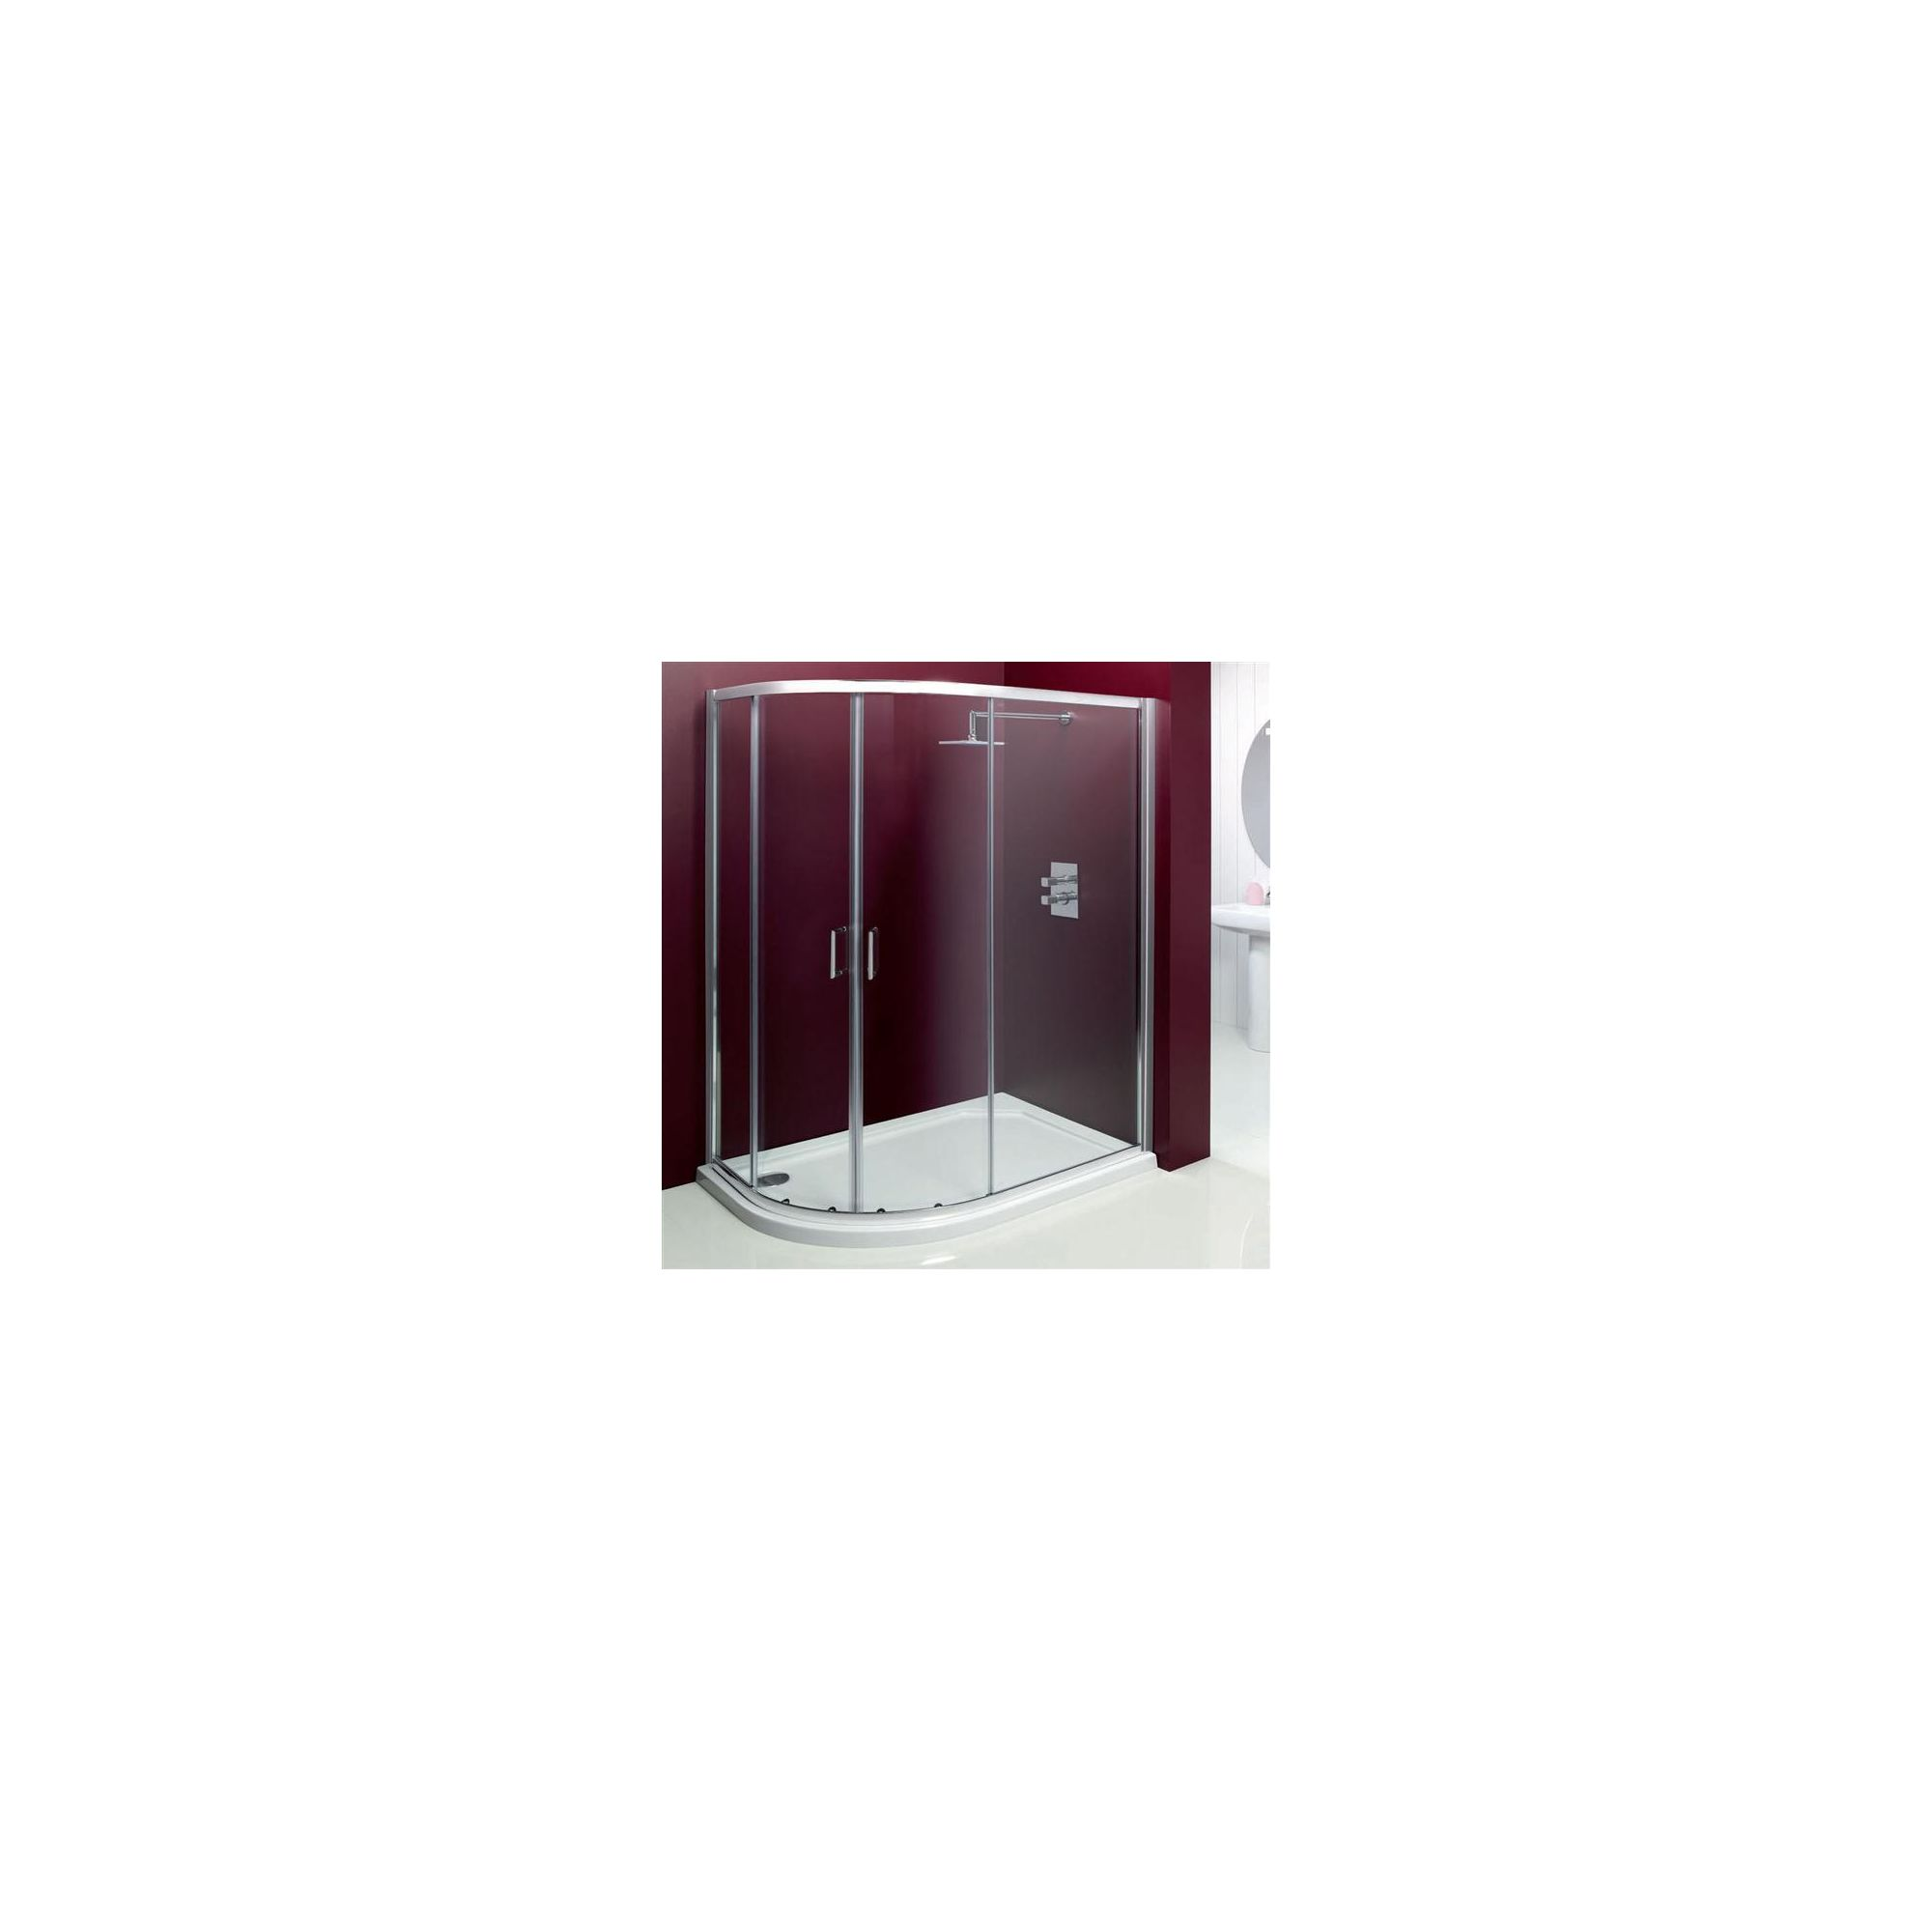 Merlyn Vivid Entree Offset Quadrant Shower Enclosure, 1200mm x 900mm, Left Handed, Low Profile Tray, 6mm Glass at Tesco Direct